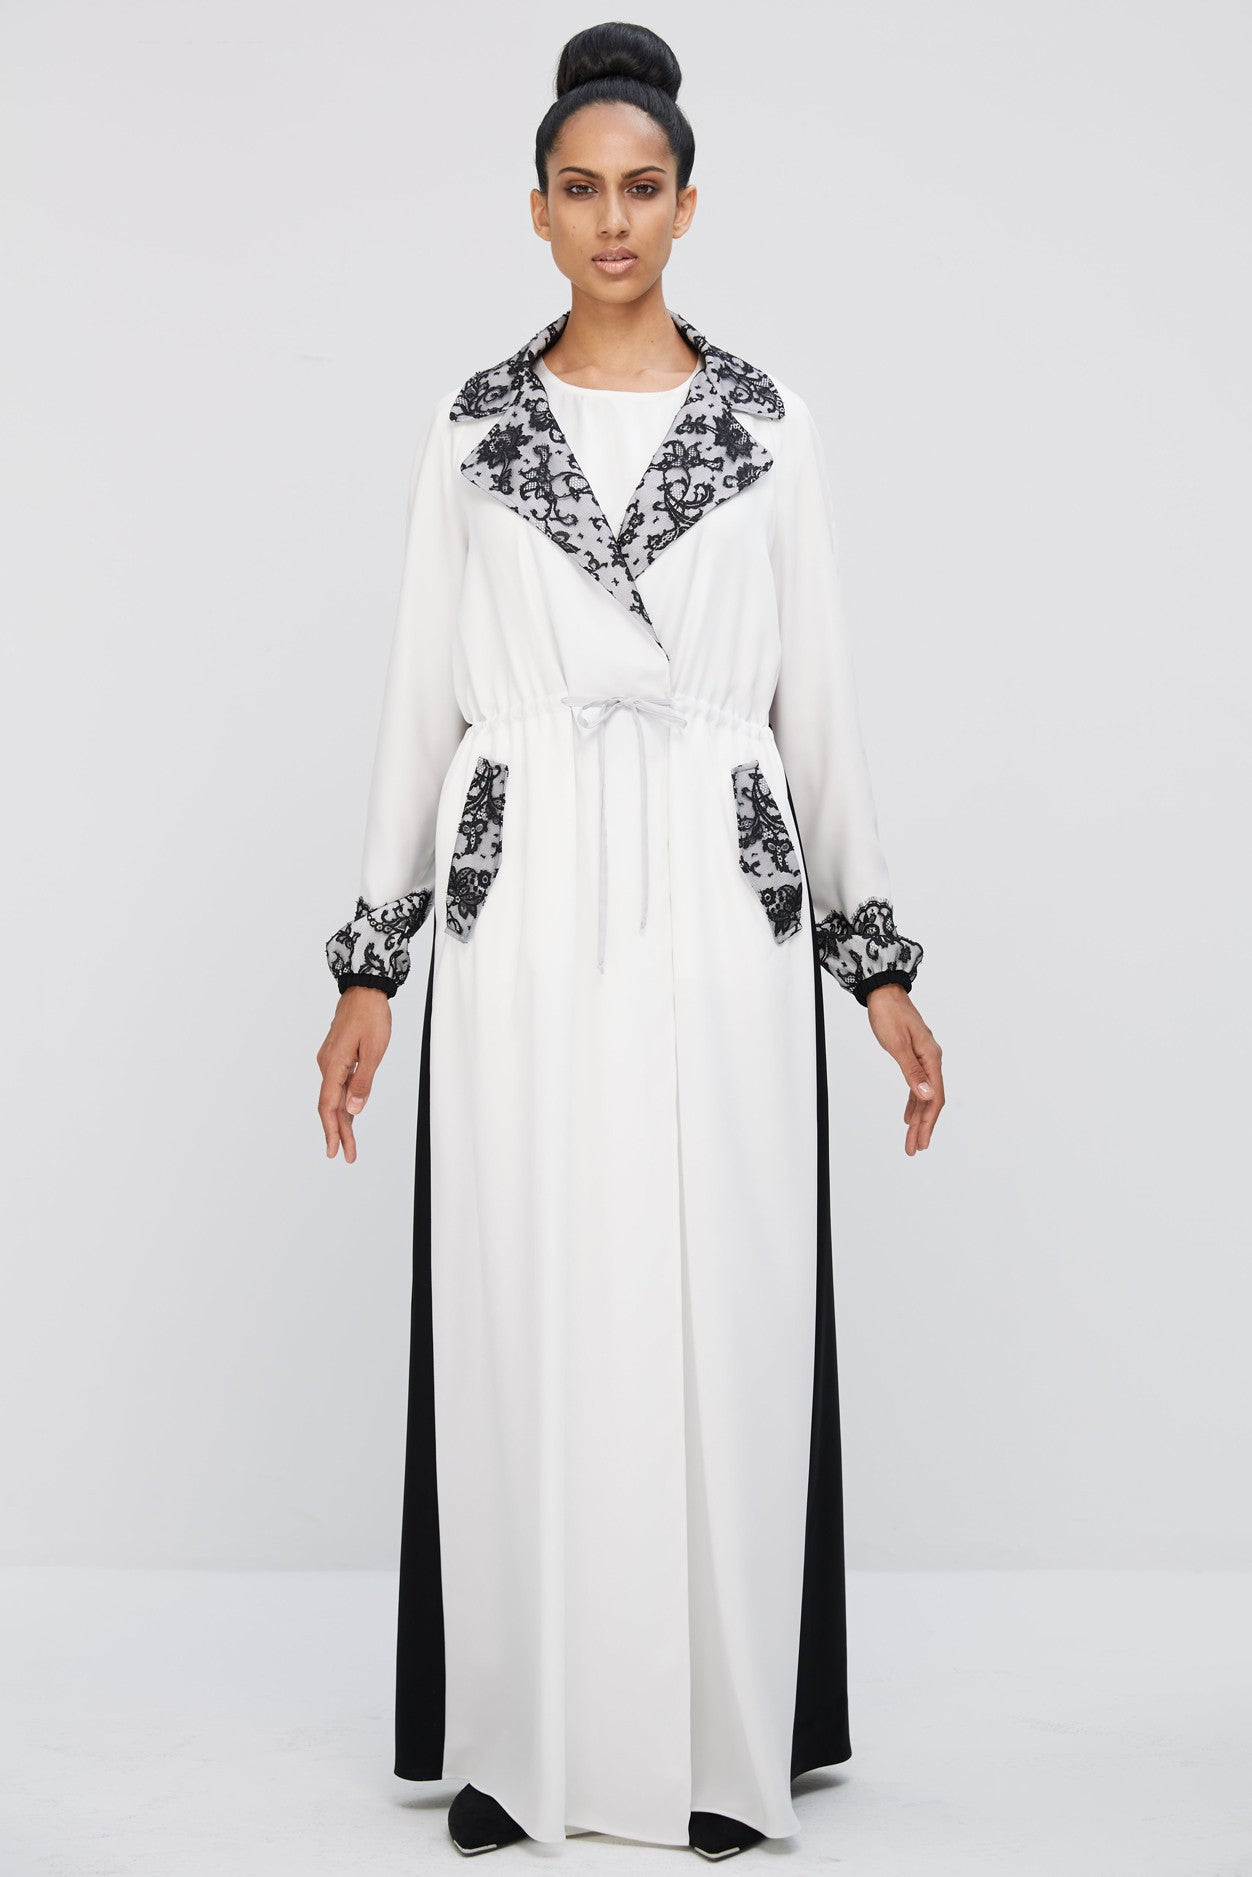 ANGELICA - AMM1895Z - Arabesque coat style abaya with pockets. French Chantilly lace on collar, pockets, sleeve end.